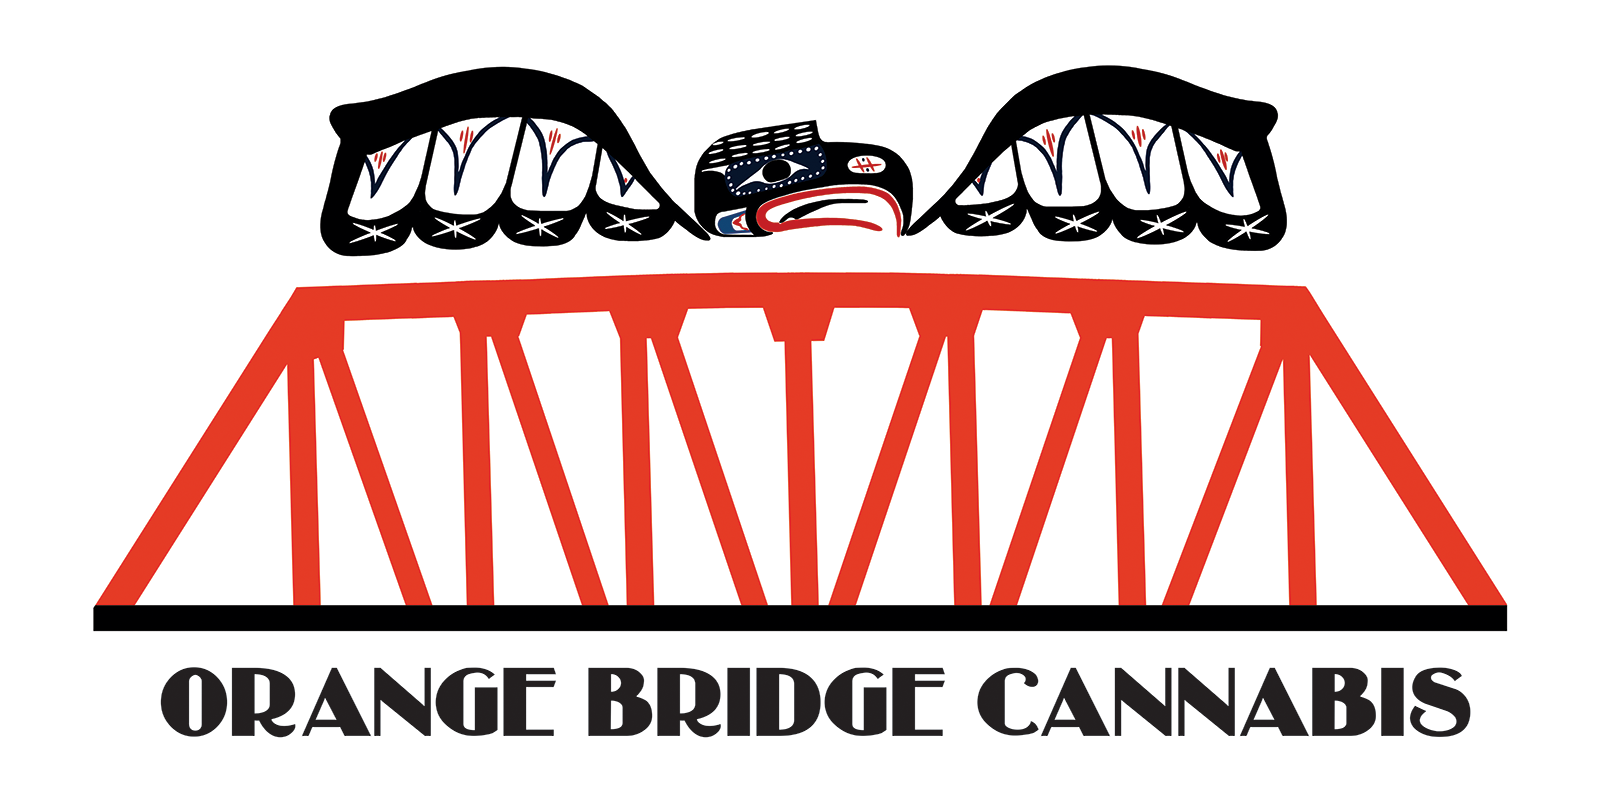 Orange Bridge Cannabis